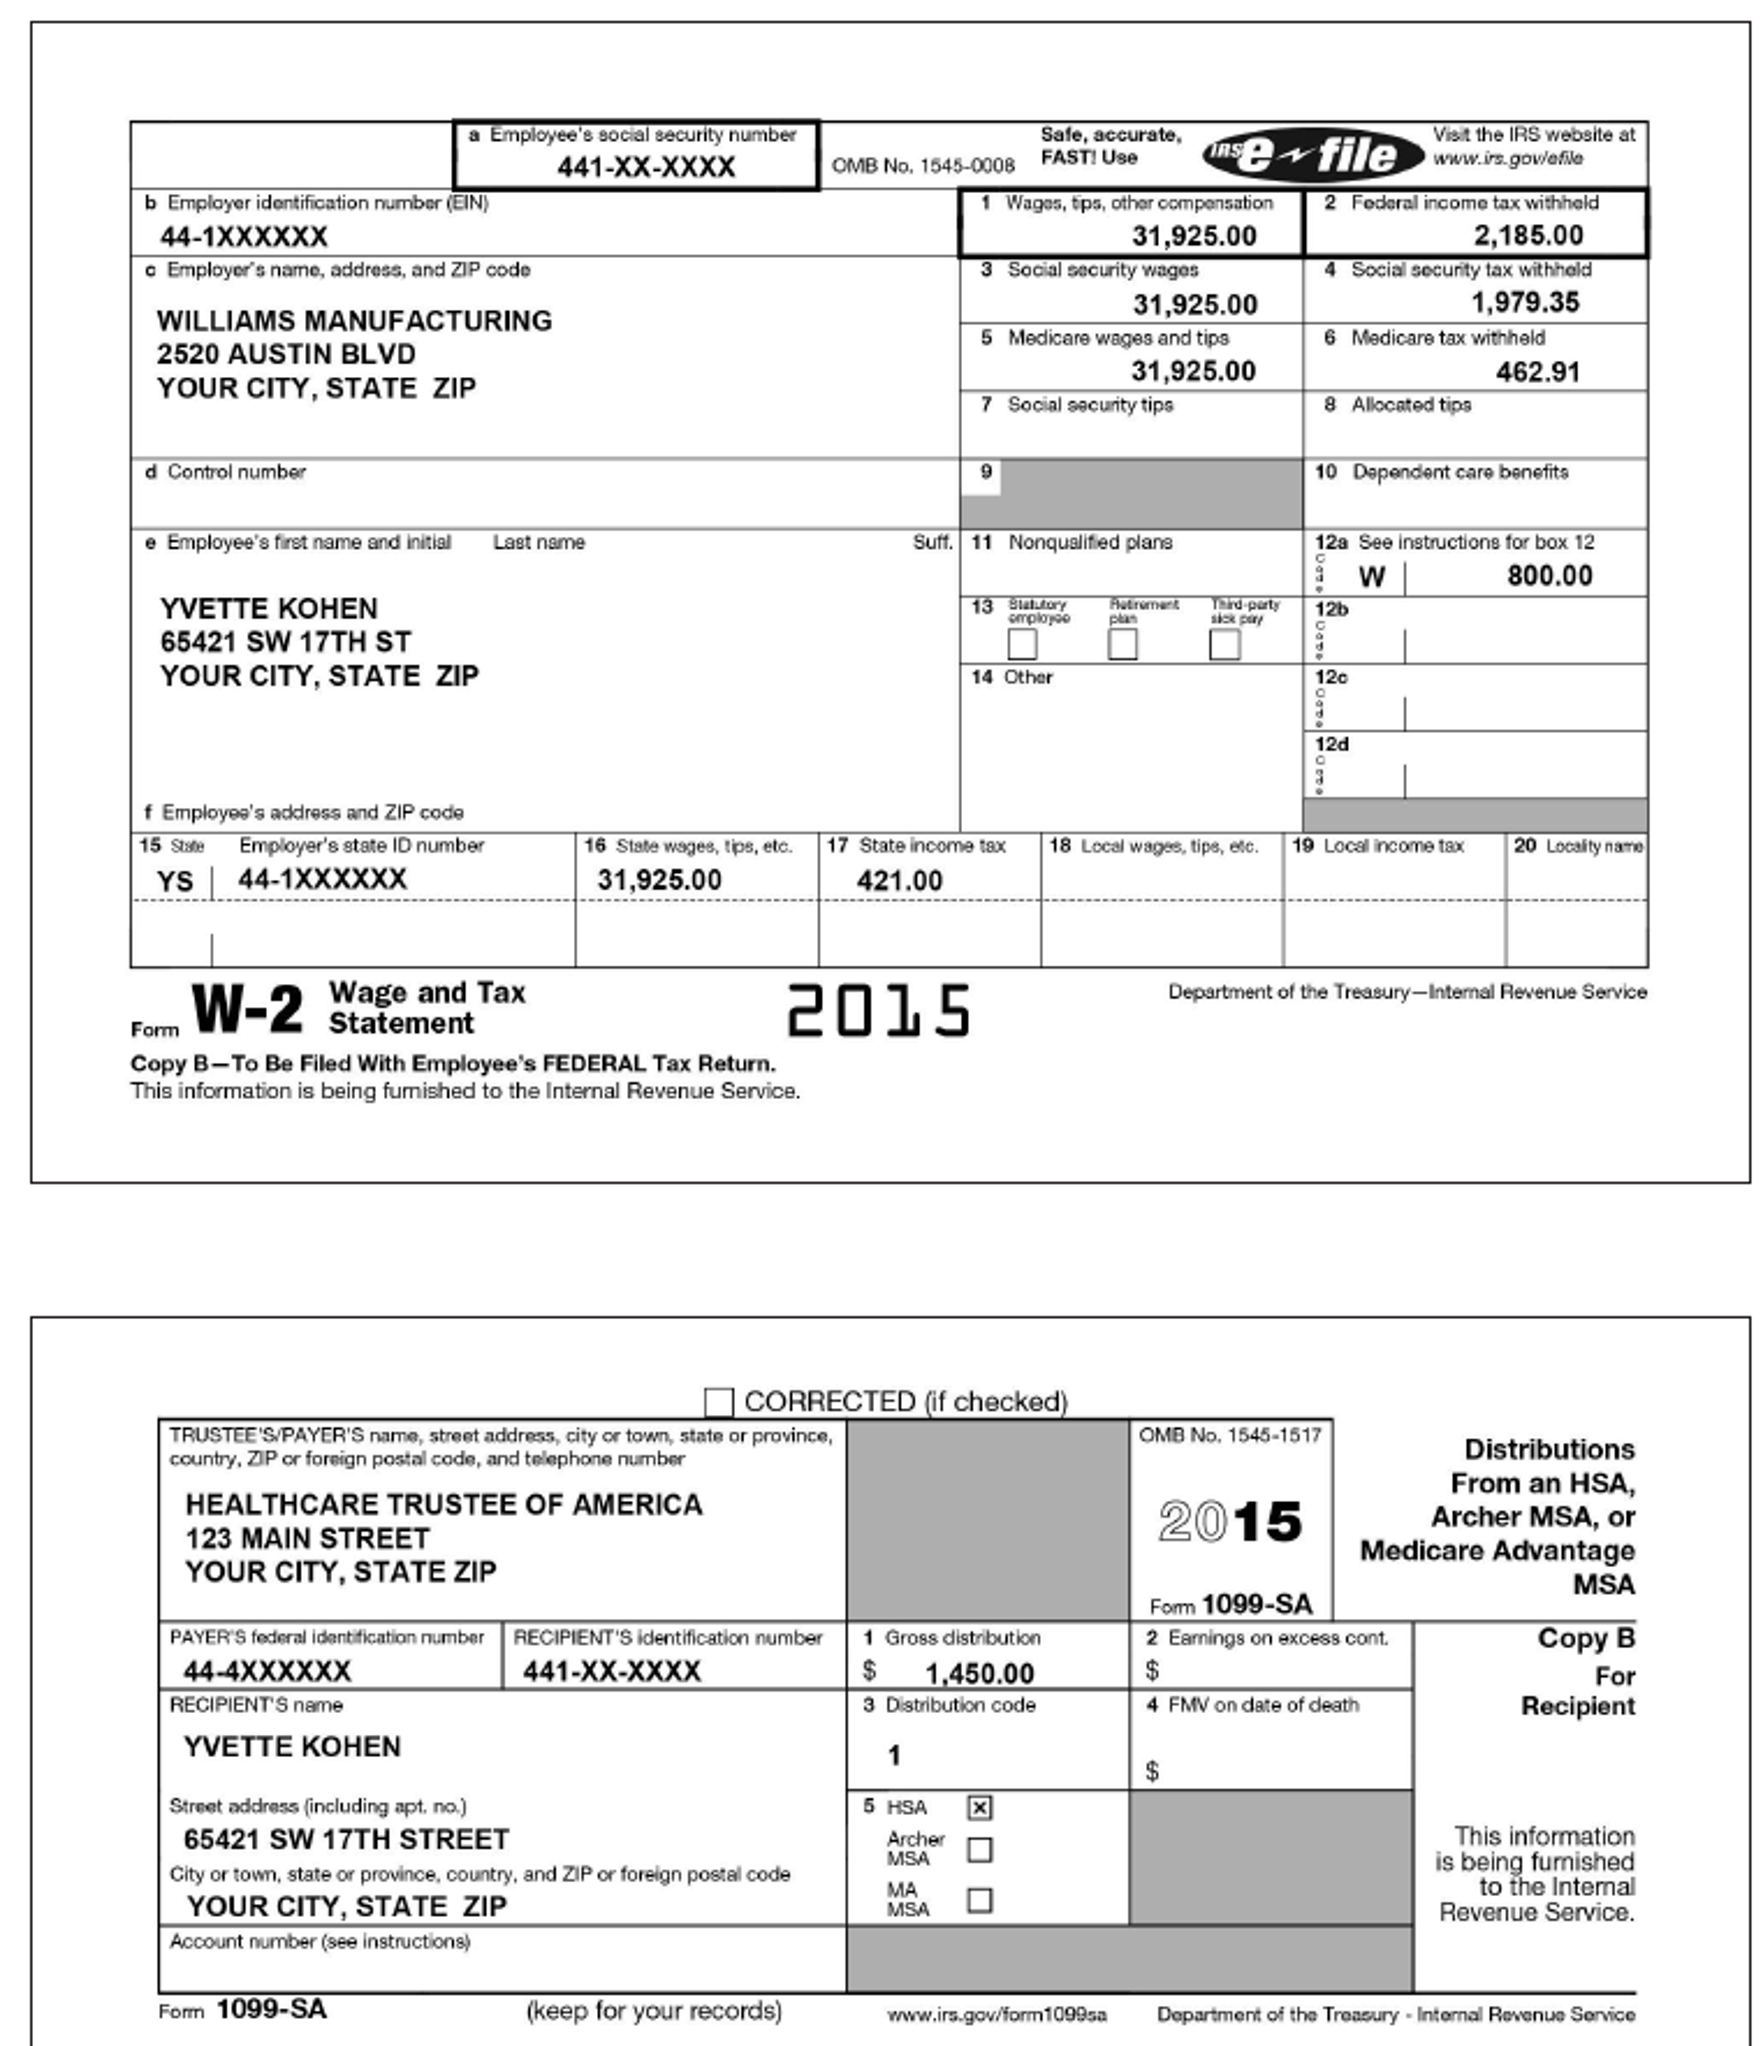 8889 form 2015 - People.davidjoel.co